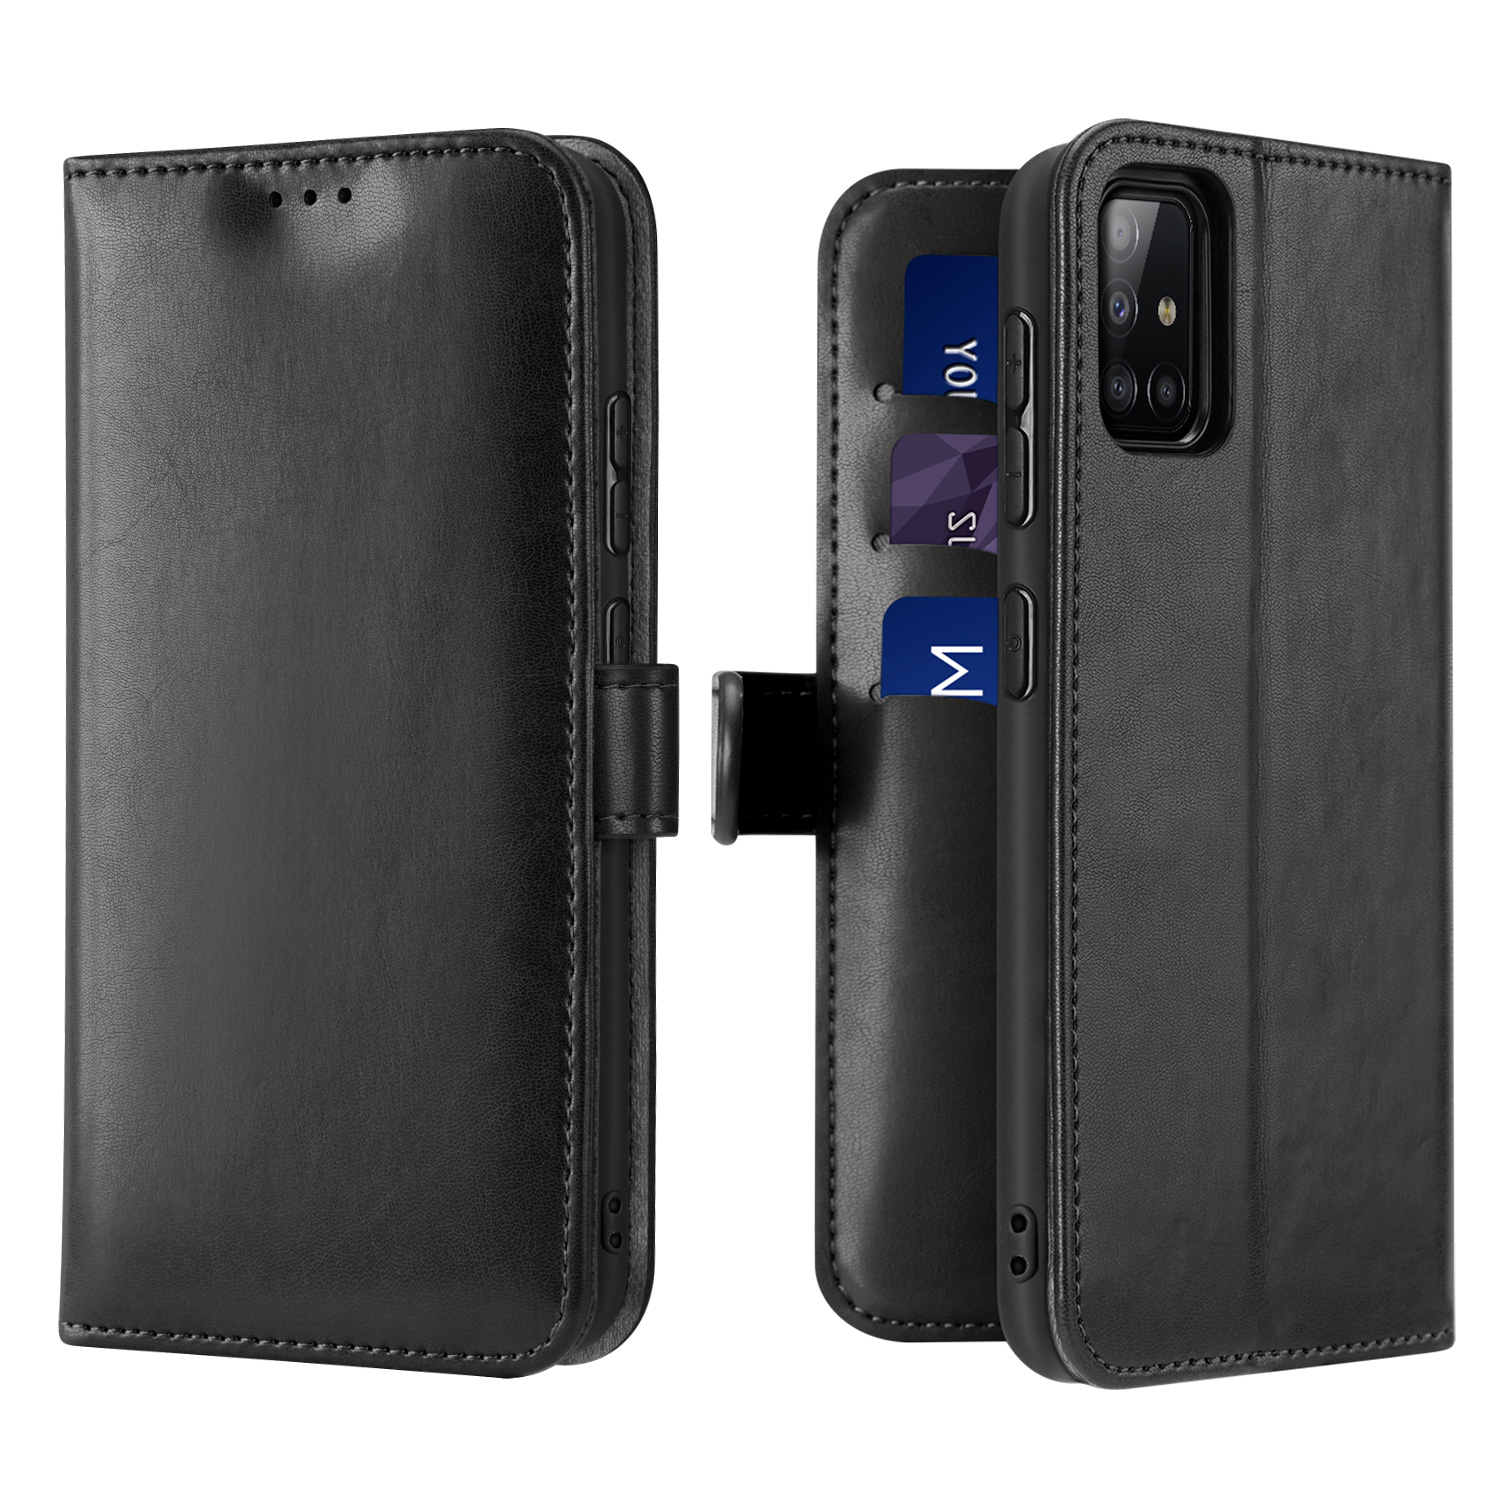 DUX DUCIS For Samsung A51/A71 Fall Resistant Mobile Phone Cover Magnetic Leather Protective Case Bracket with 3 Cards Slot black_Samsung A51